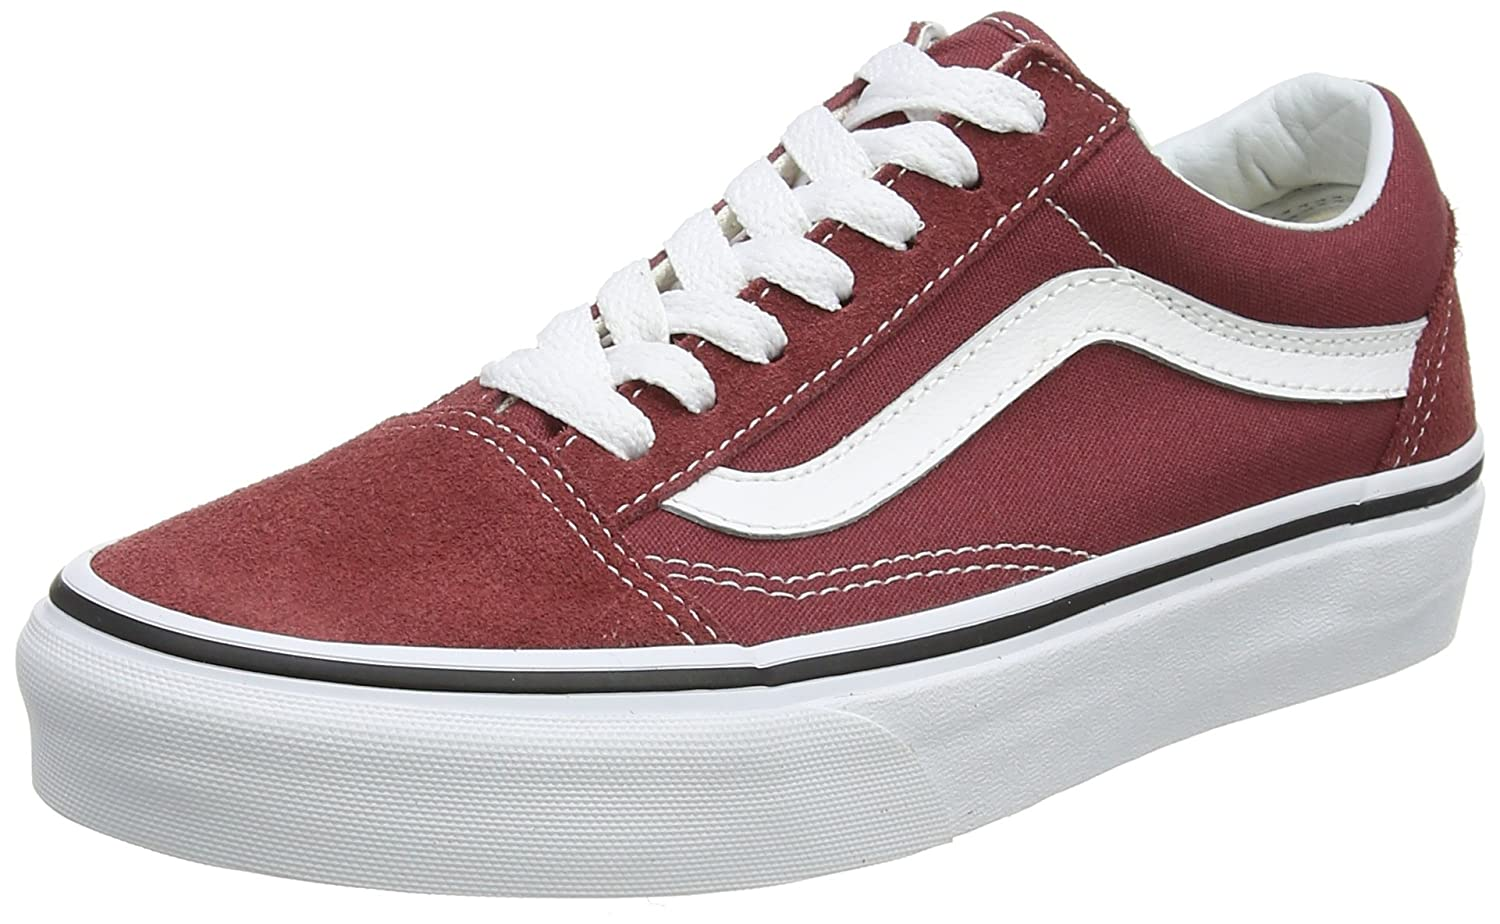 Vans Old Skool Unisex Adults' Low-Top Trainers B074HCT5LK 11 Women / 9.5 Men M US|Apple Butter/True White